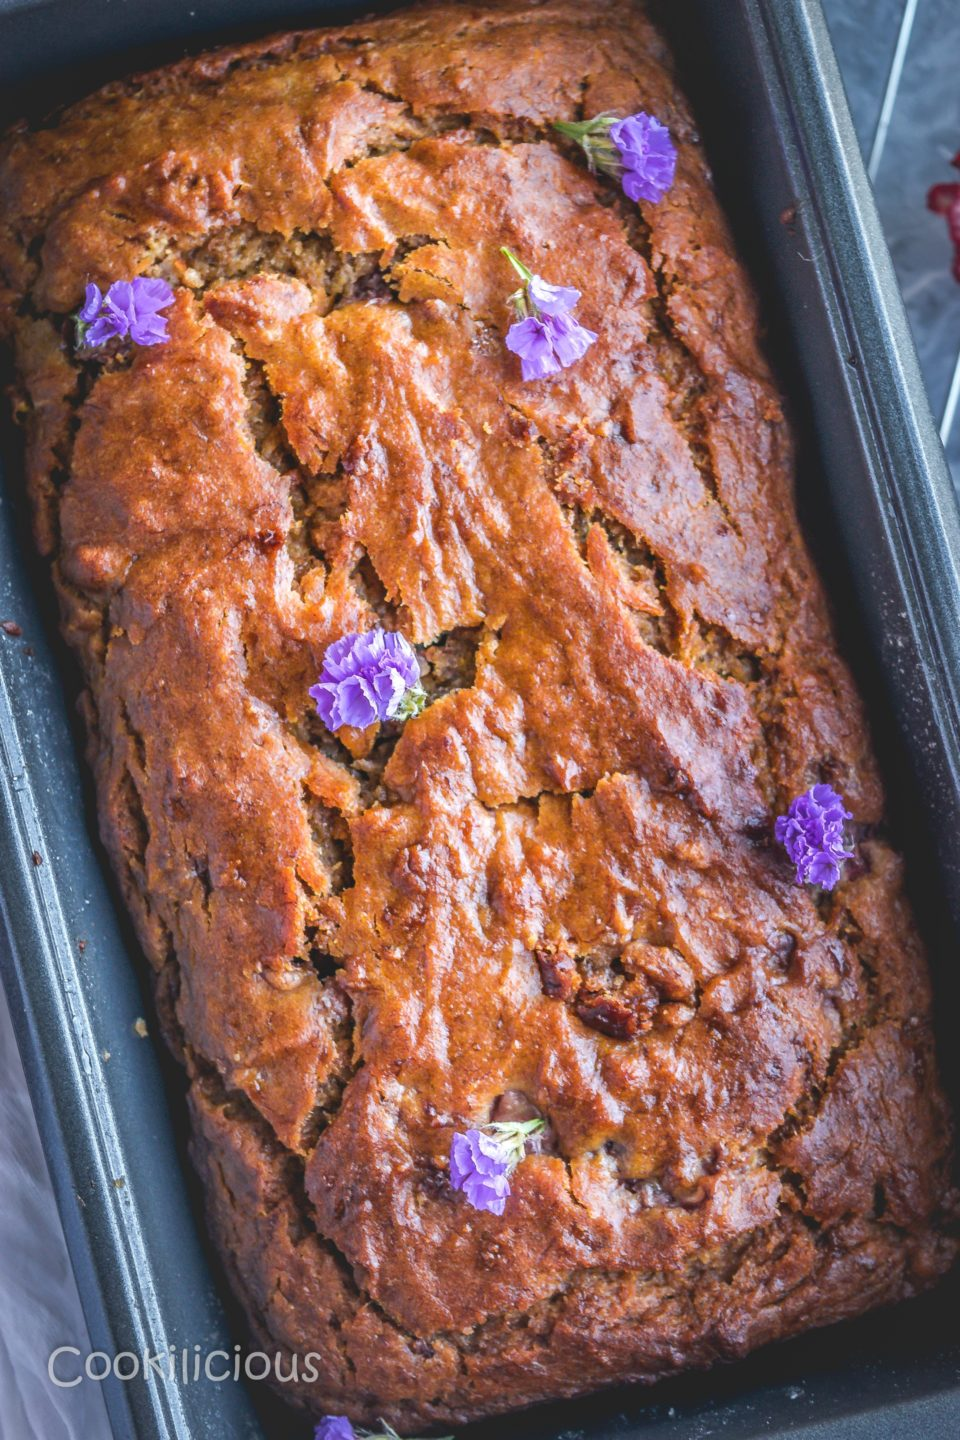 Banana & Strawberry Bread in a loaf pan with purple flowers randomly placed over it